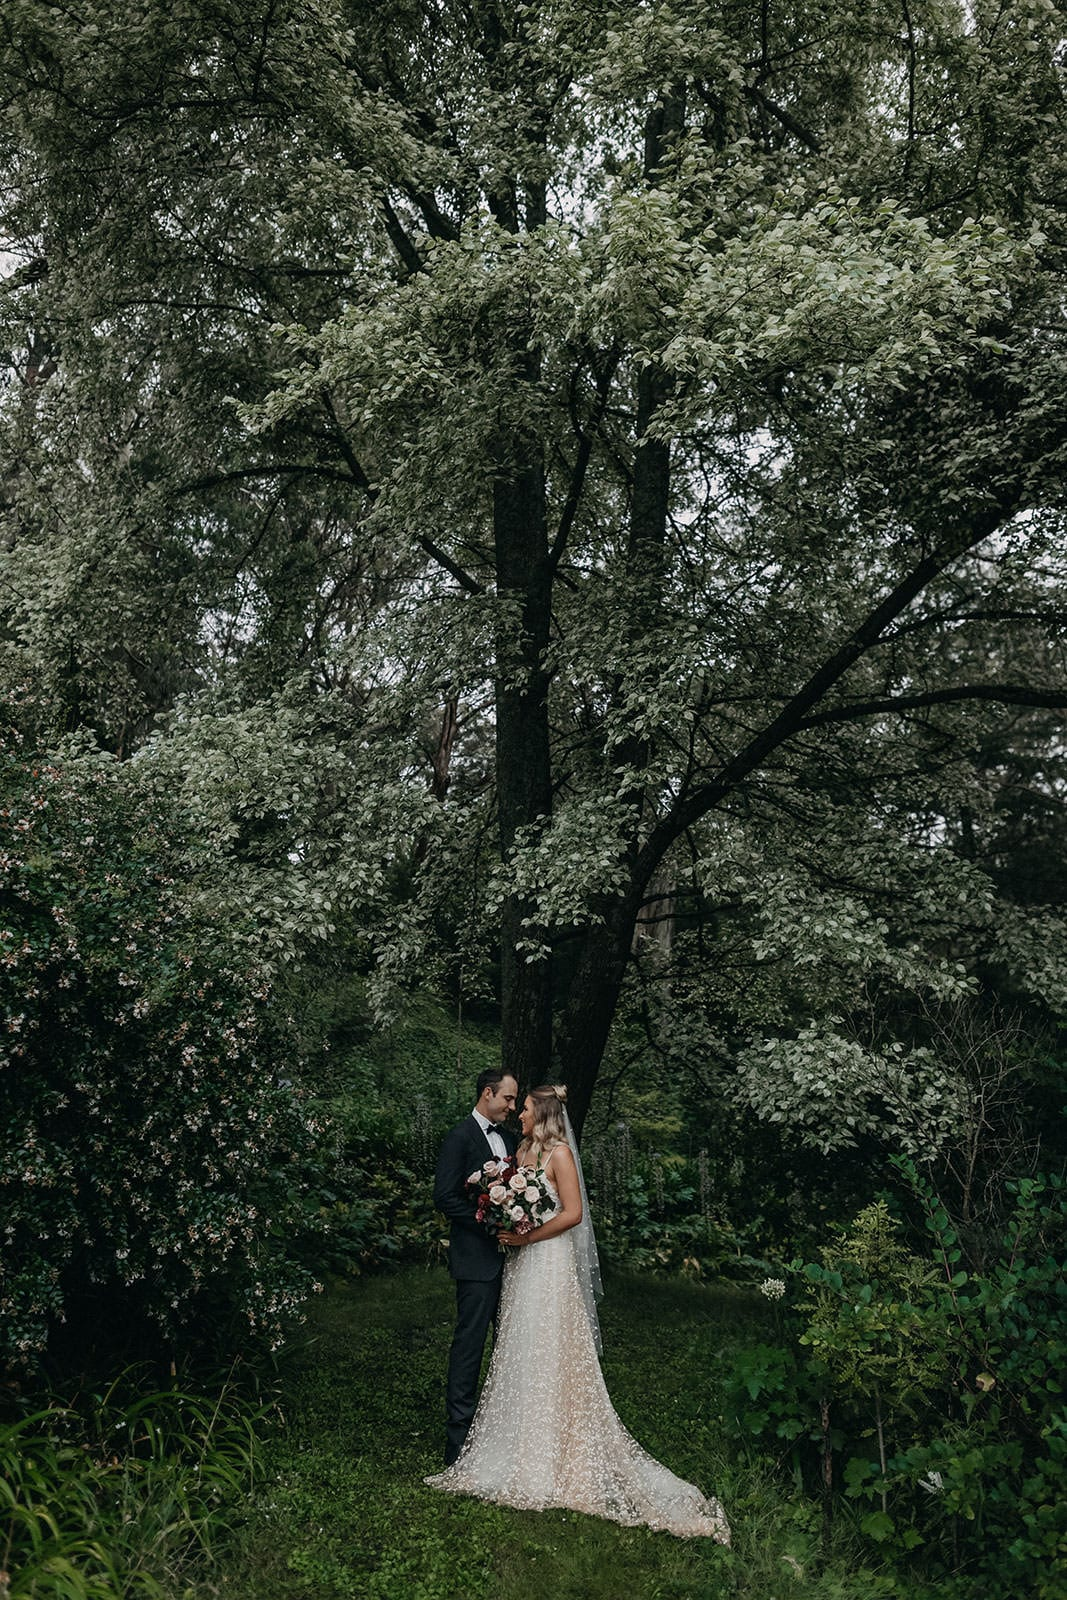 Blonde bride wearing Grace Loves Lace Menha Gown and matching veil standing with groom holding bouquet underneath tree